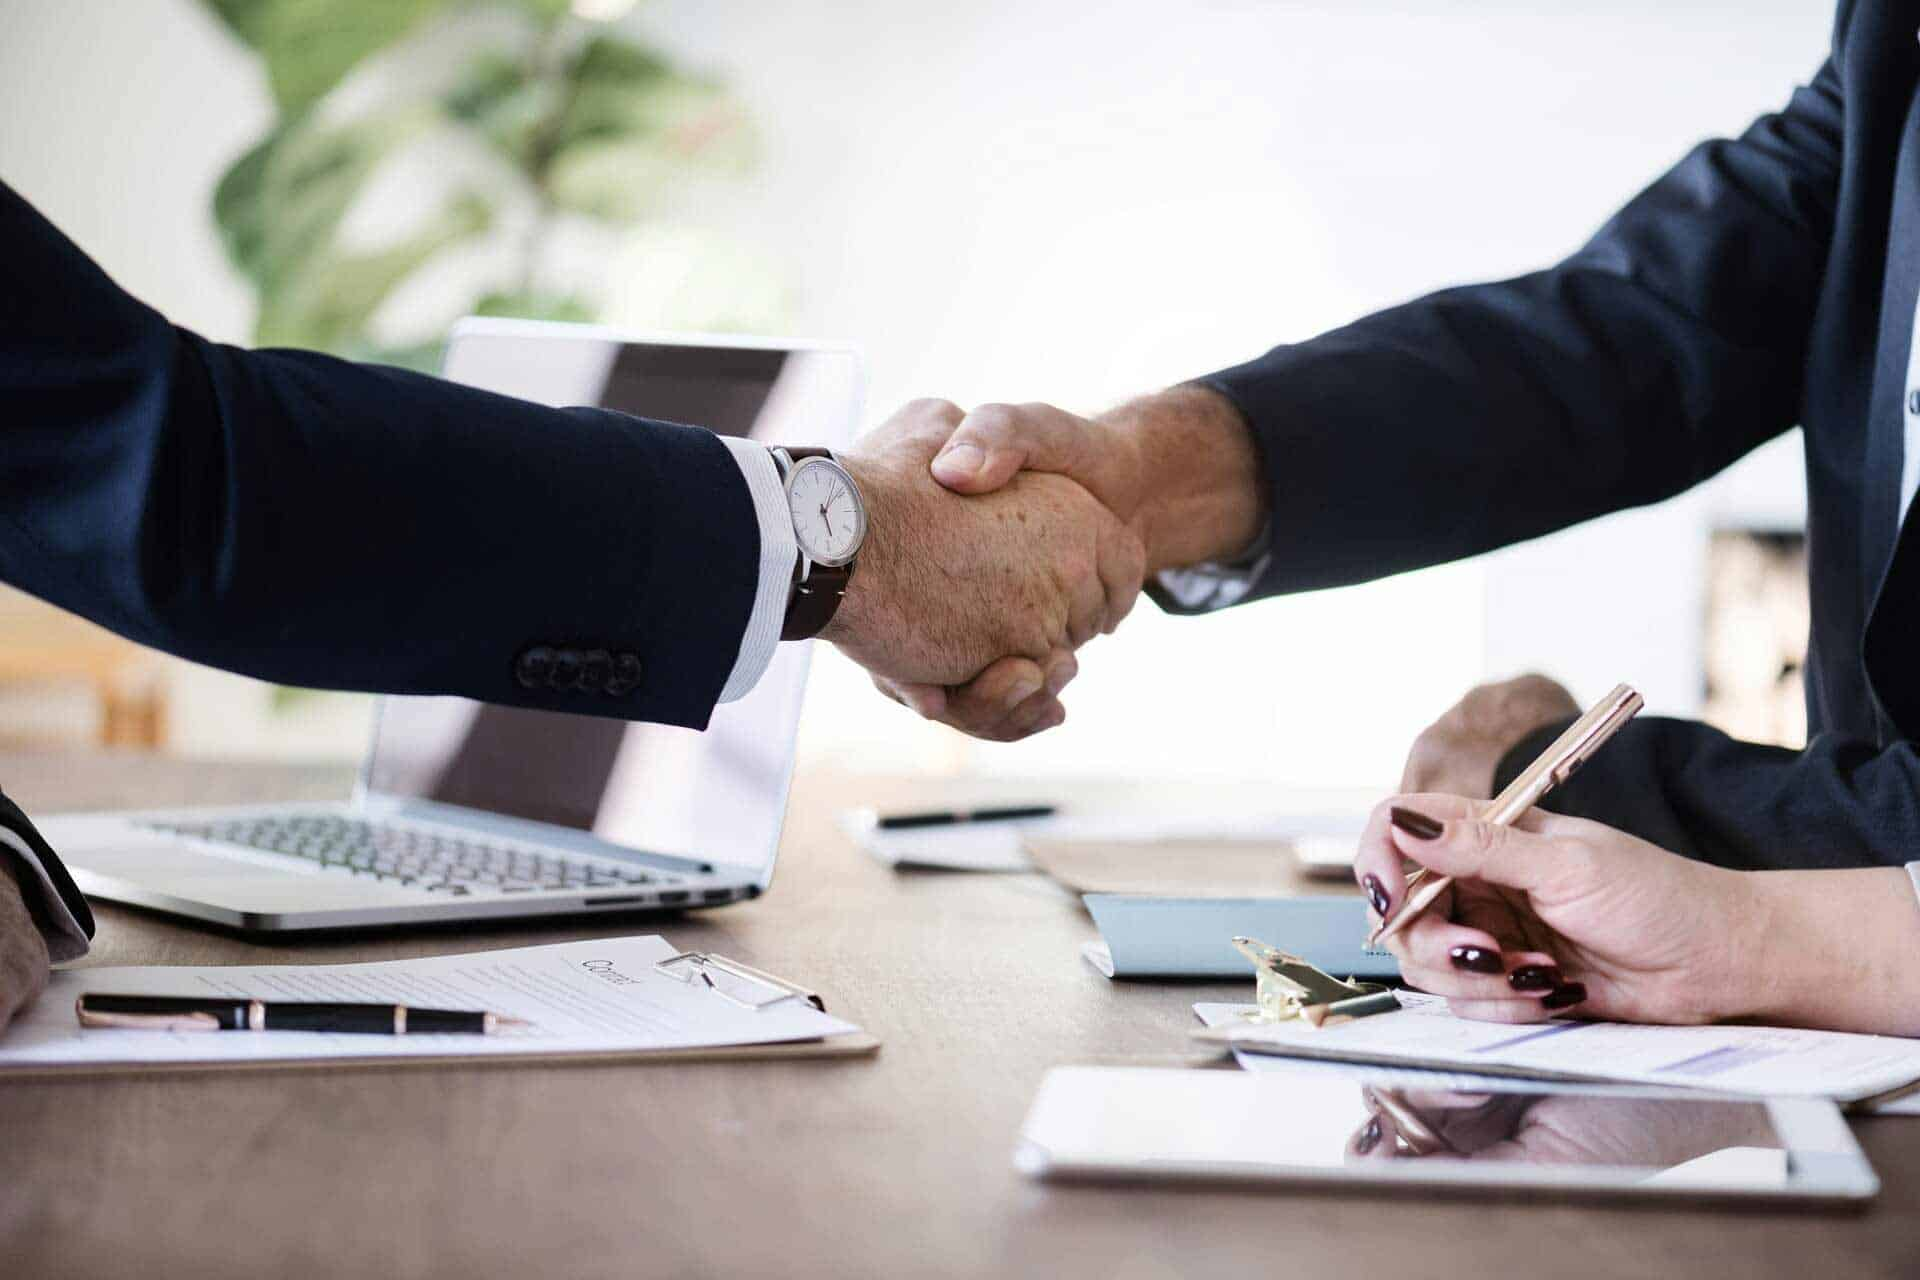 Two men shaking hands over a desk during a business deal